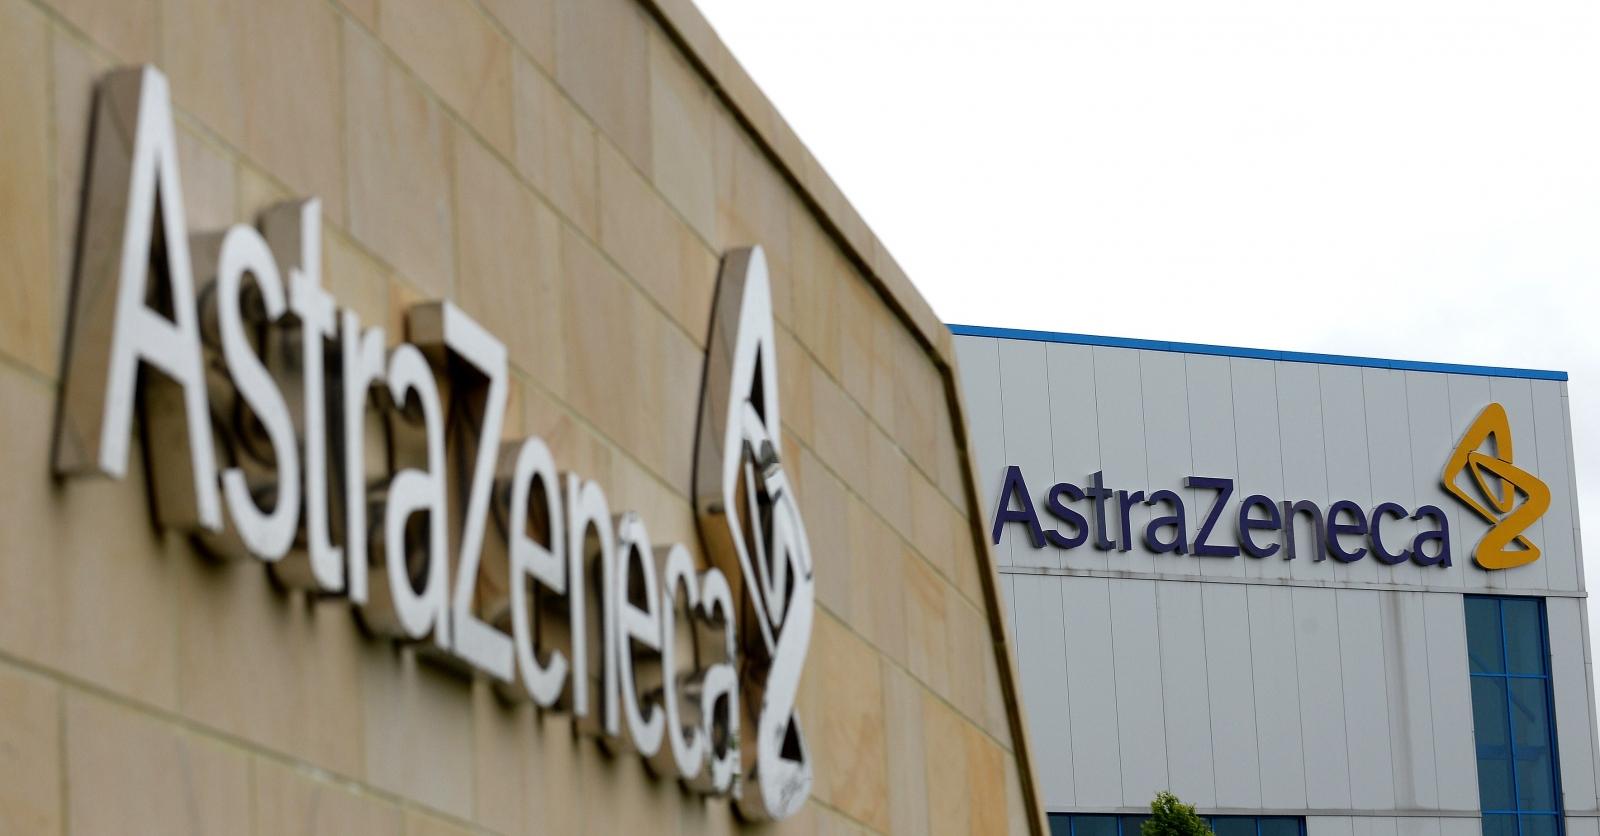 AstraZeneca sales slide as Crestor patent expiry continues to bite